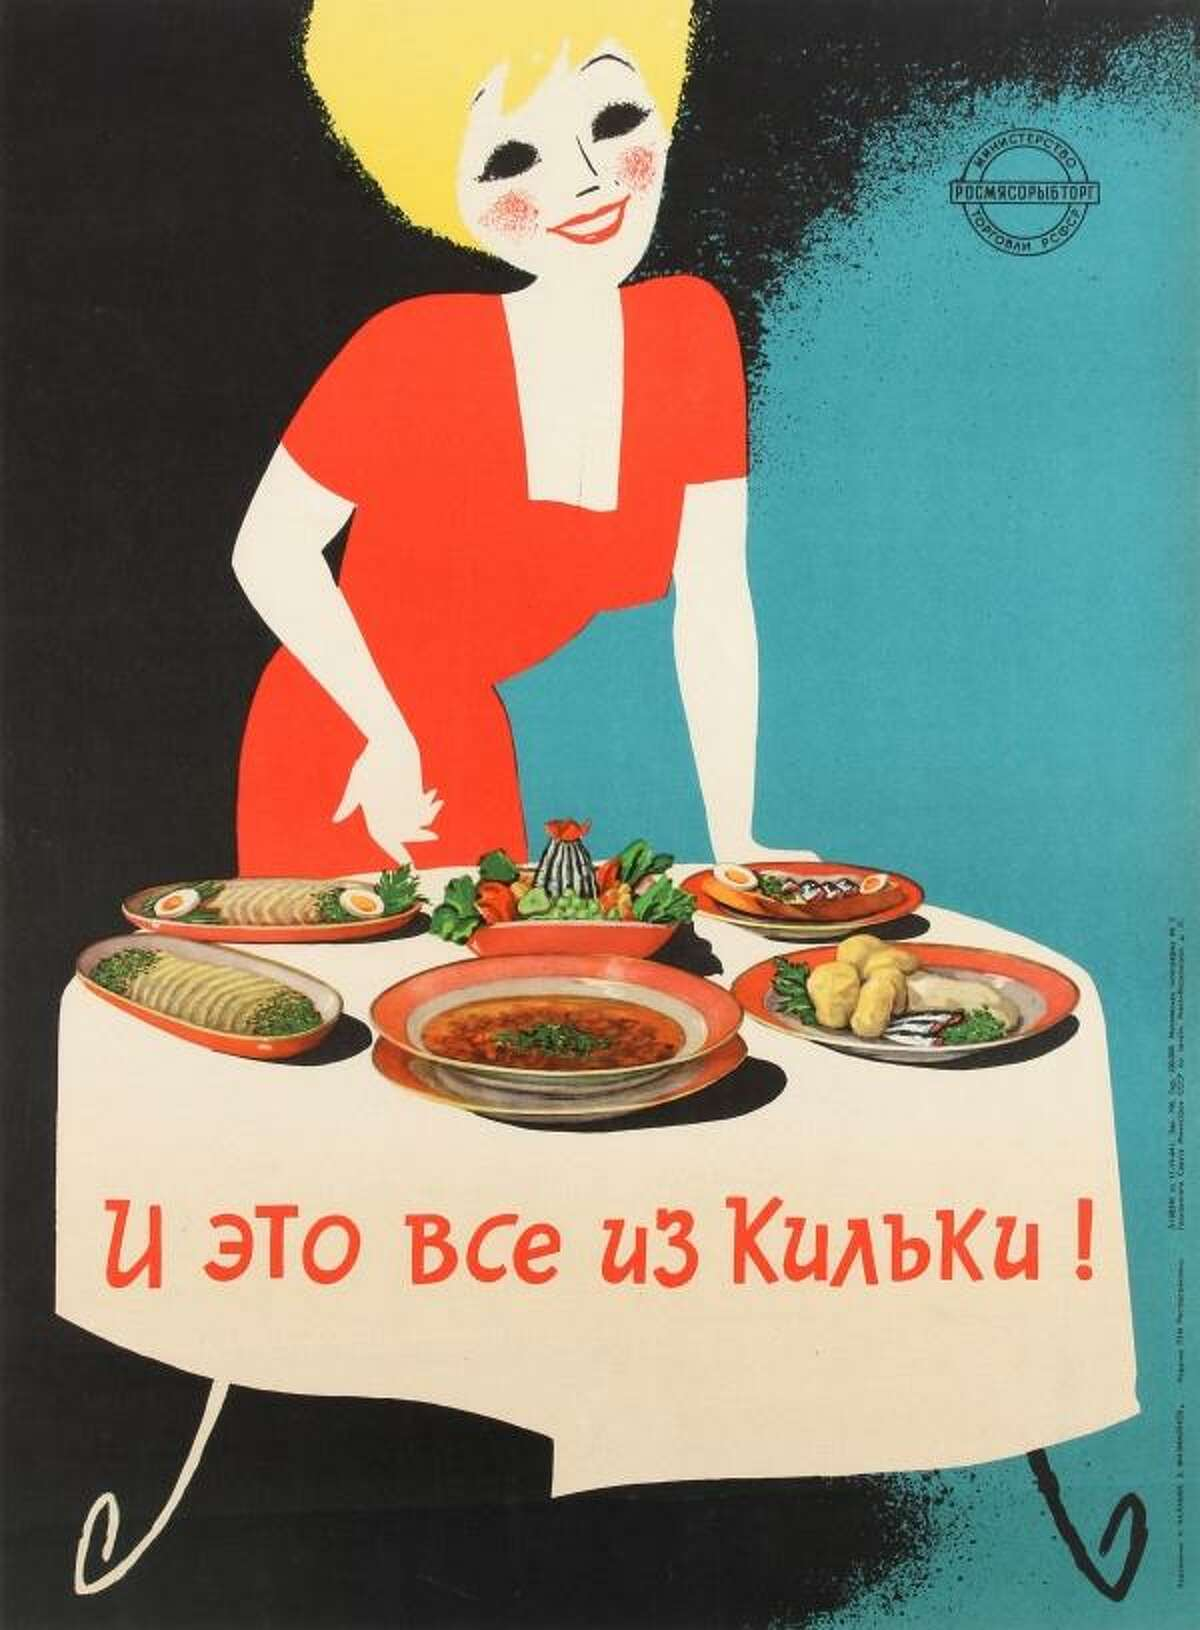 Sprat fish (1964, USSR) A Russian poster promoting the versatility of sprat fish. The Soviet diet consisted of a limited number of foods in the 1960s but sprat fish was plentiful thanks to the Baltic Sea. Here the Government is trying to persuade citizens that sardines and pilchards can used in a multitude of dishes.